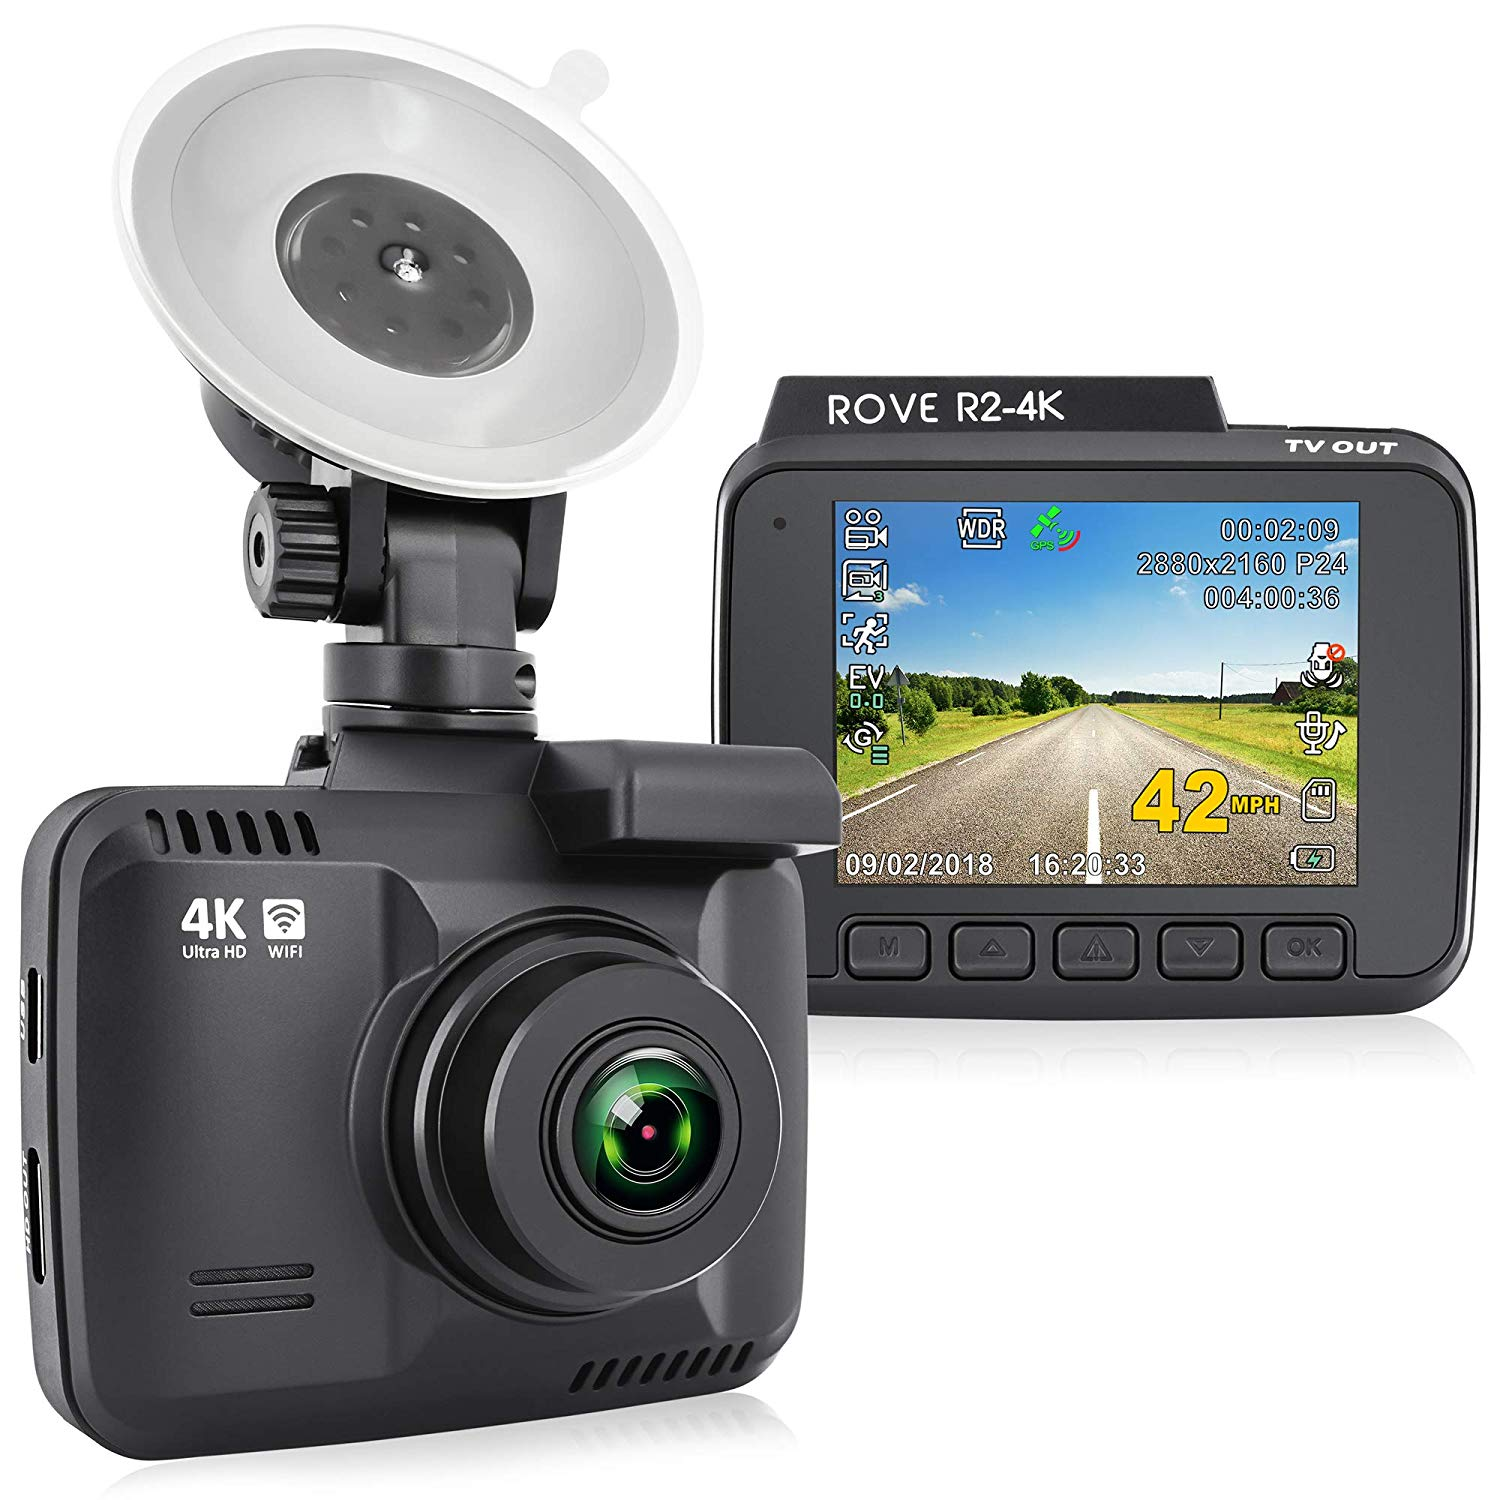 Rove R2 4K Dash Cam Review